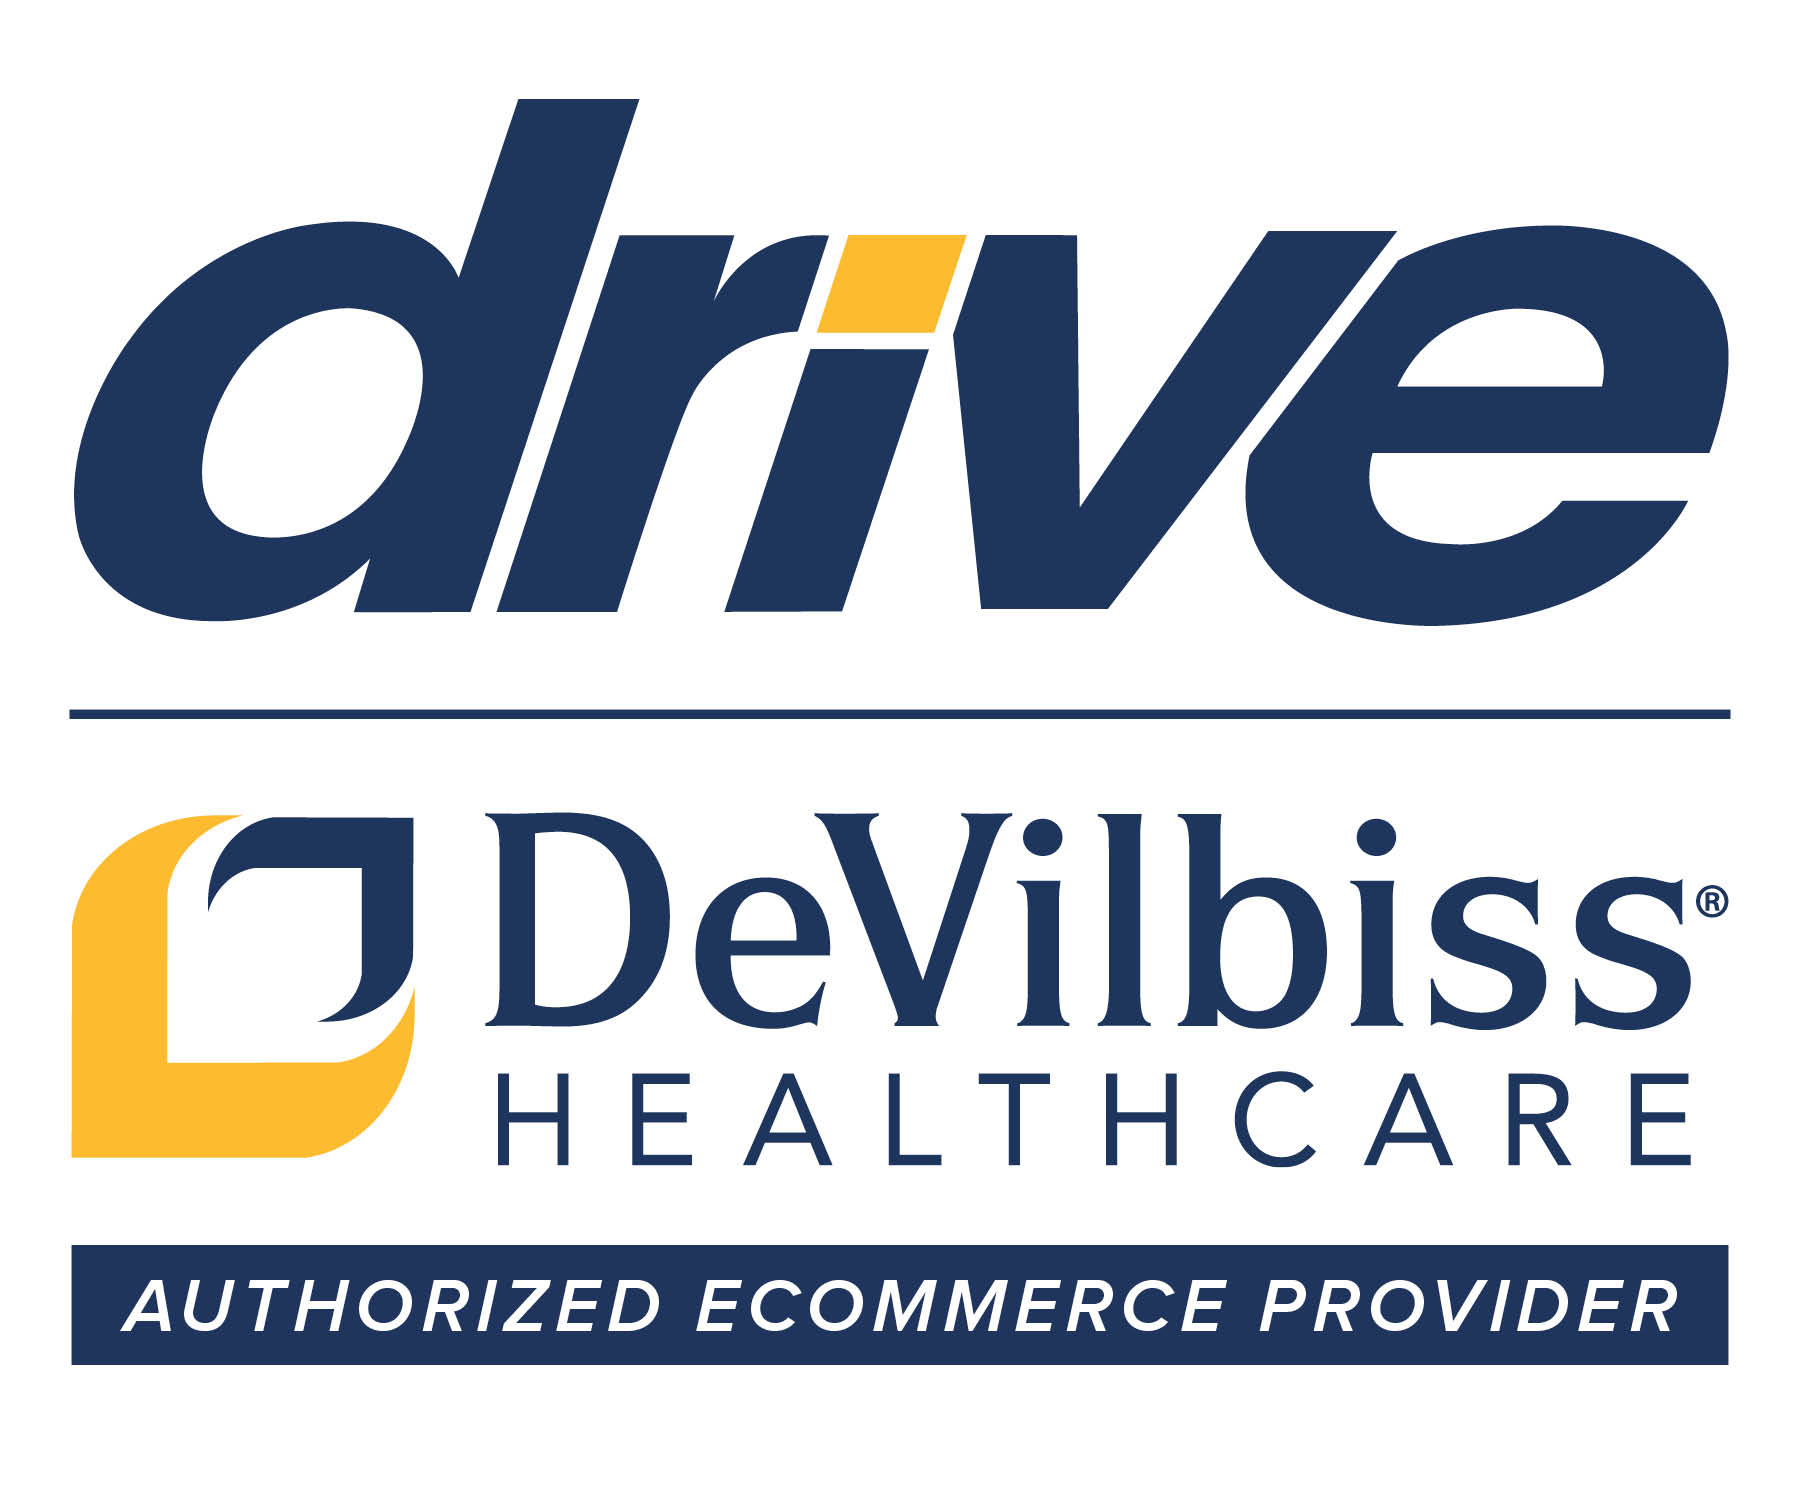 drive-devilbiss-authorized-ecommerce-logo-copy.jpg